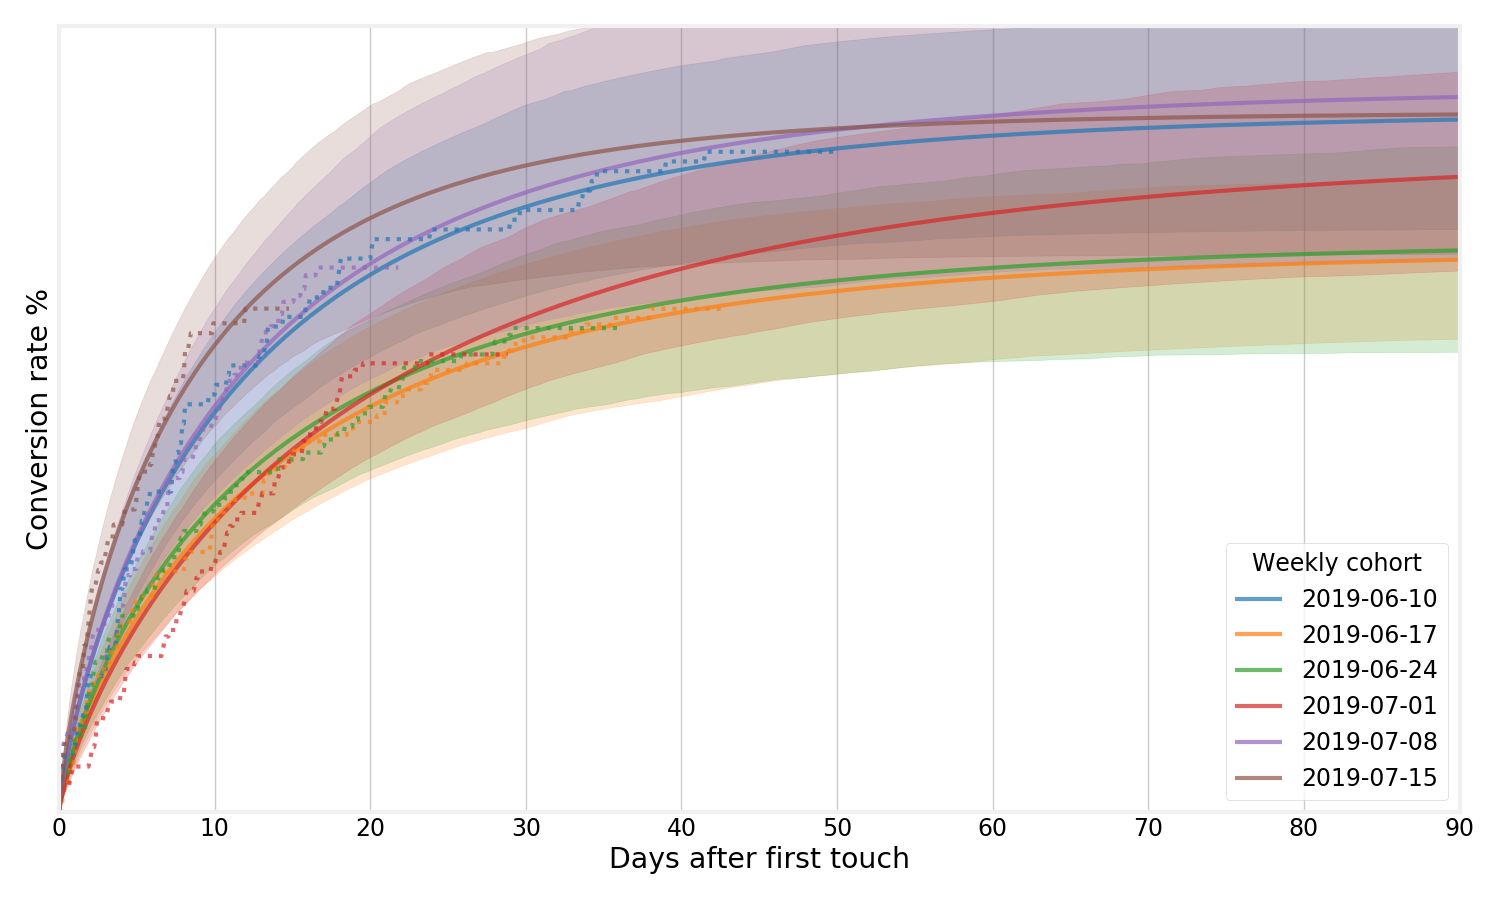 weibull distribution with uncertainty